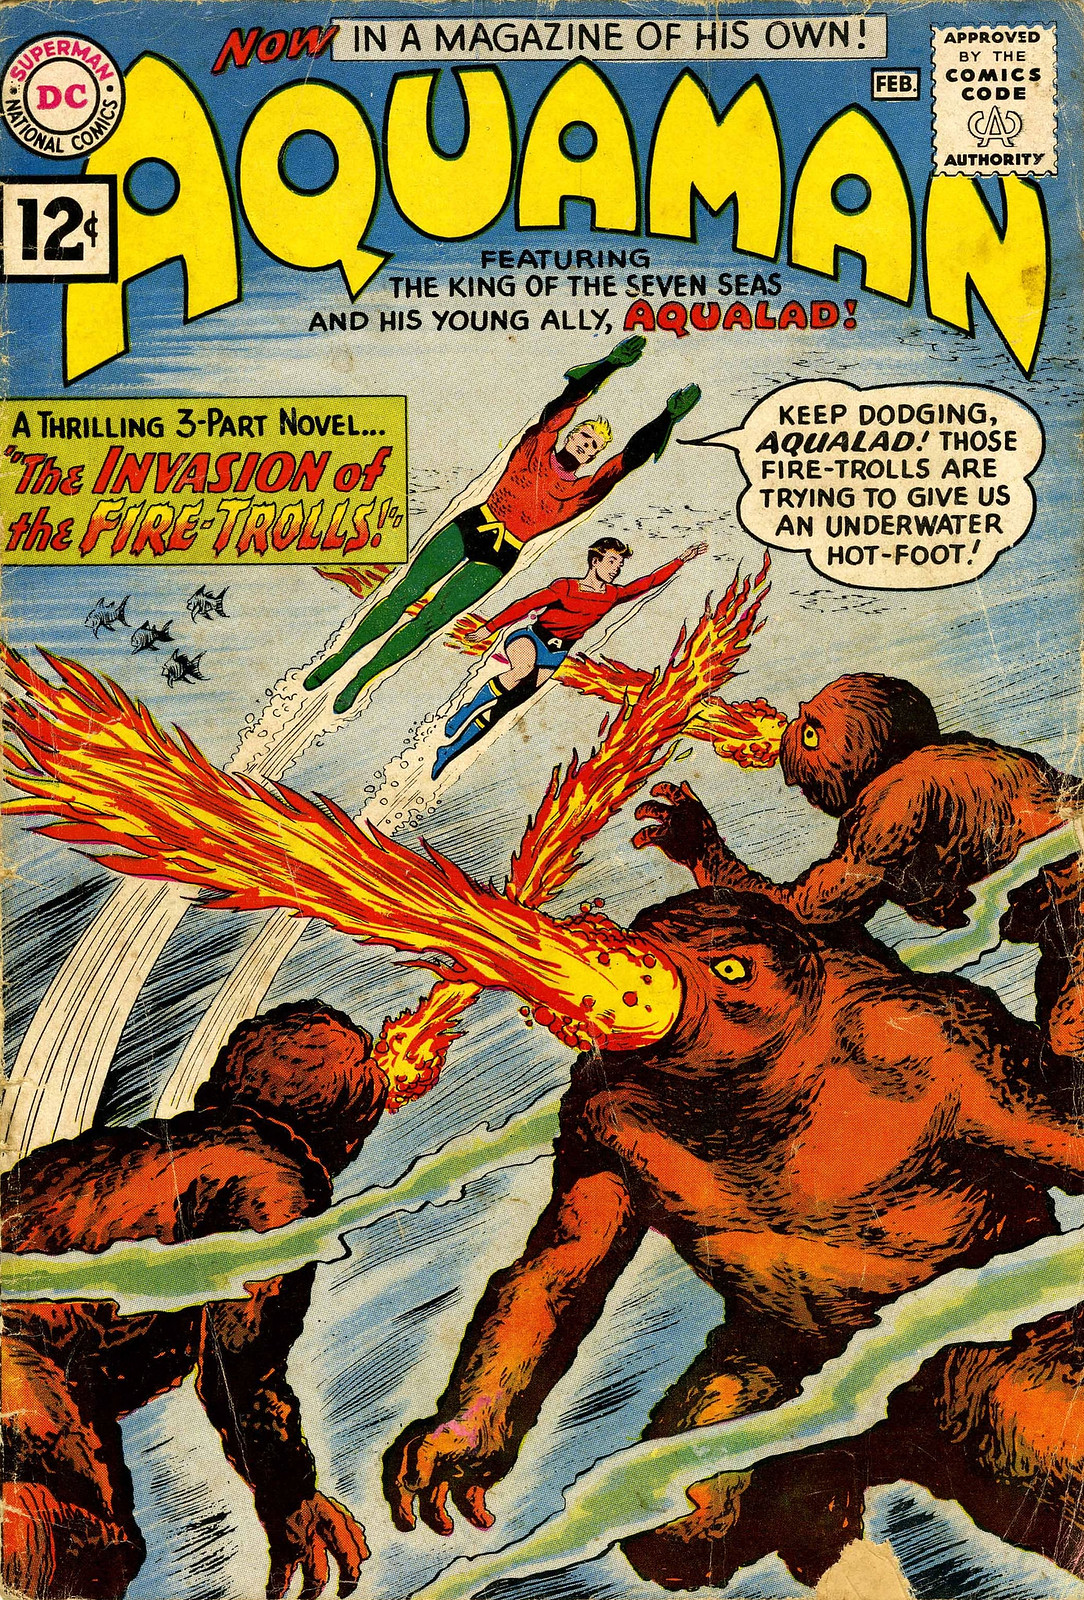 Aquaman #1 (DC, 1962) Howard Purcell Cover